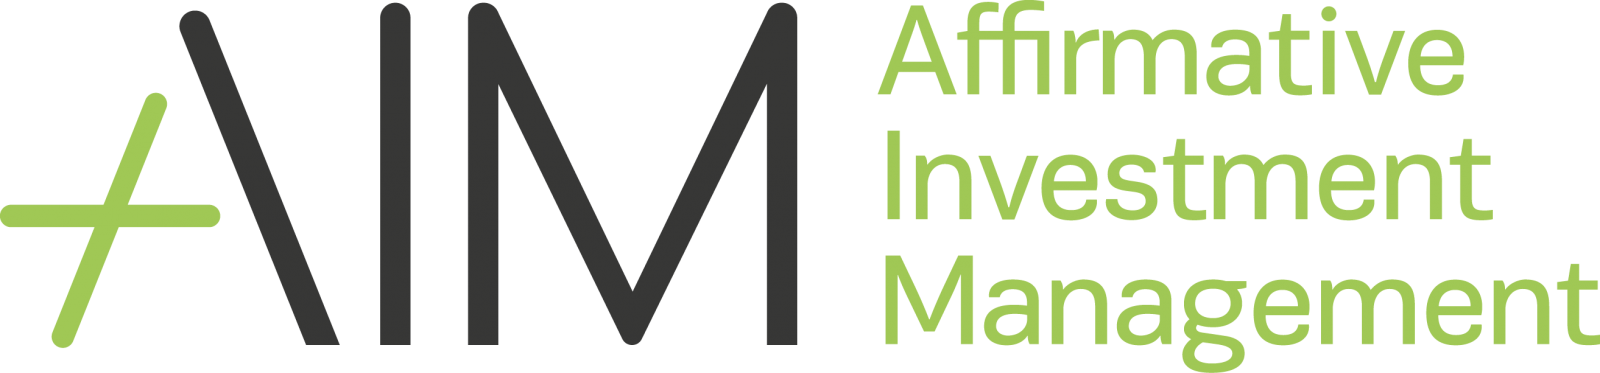 Affirmative investment management aim. Manager clipart fund manager